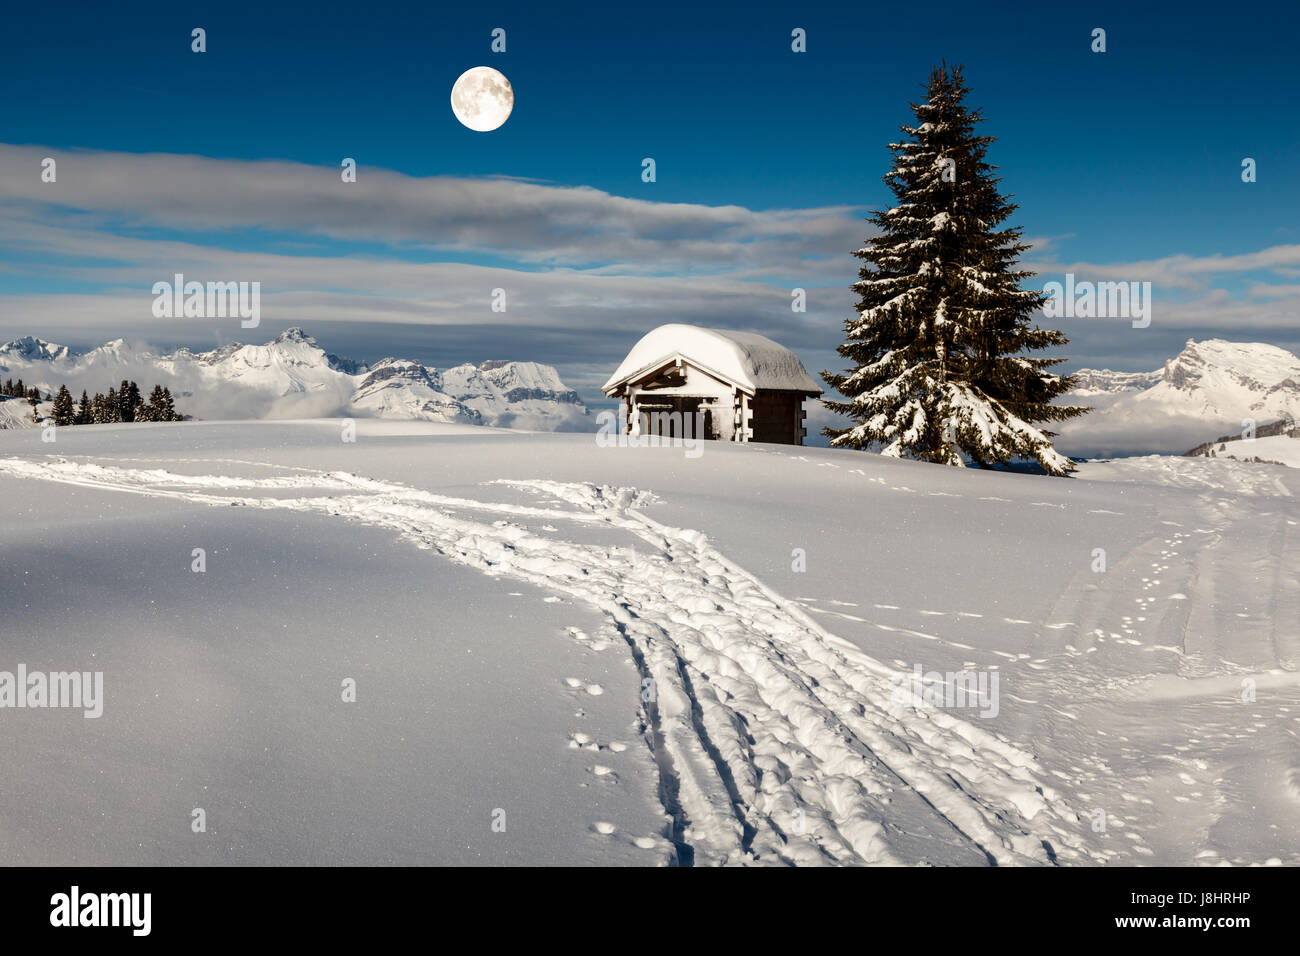 Full Moon above Small Hut and Fir Tree on the Top of the Mountain in Megeve, French Alps - Stock Image